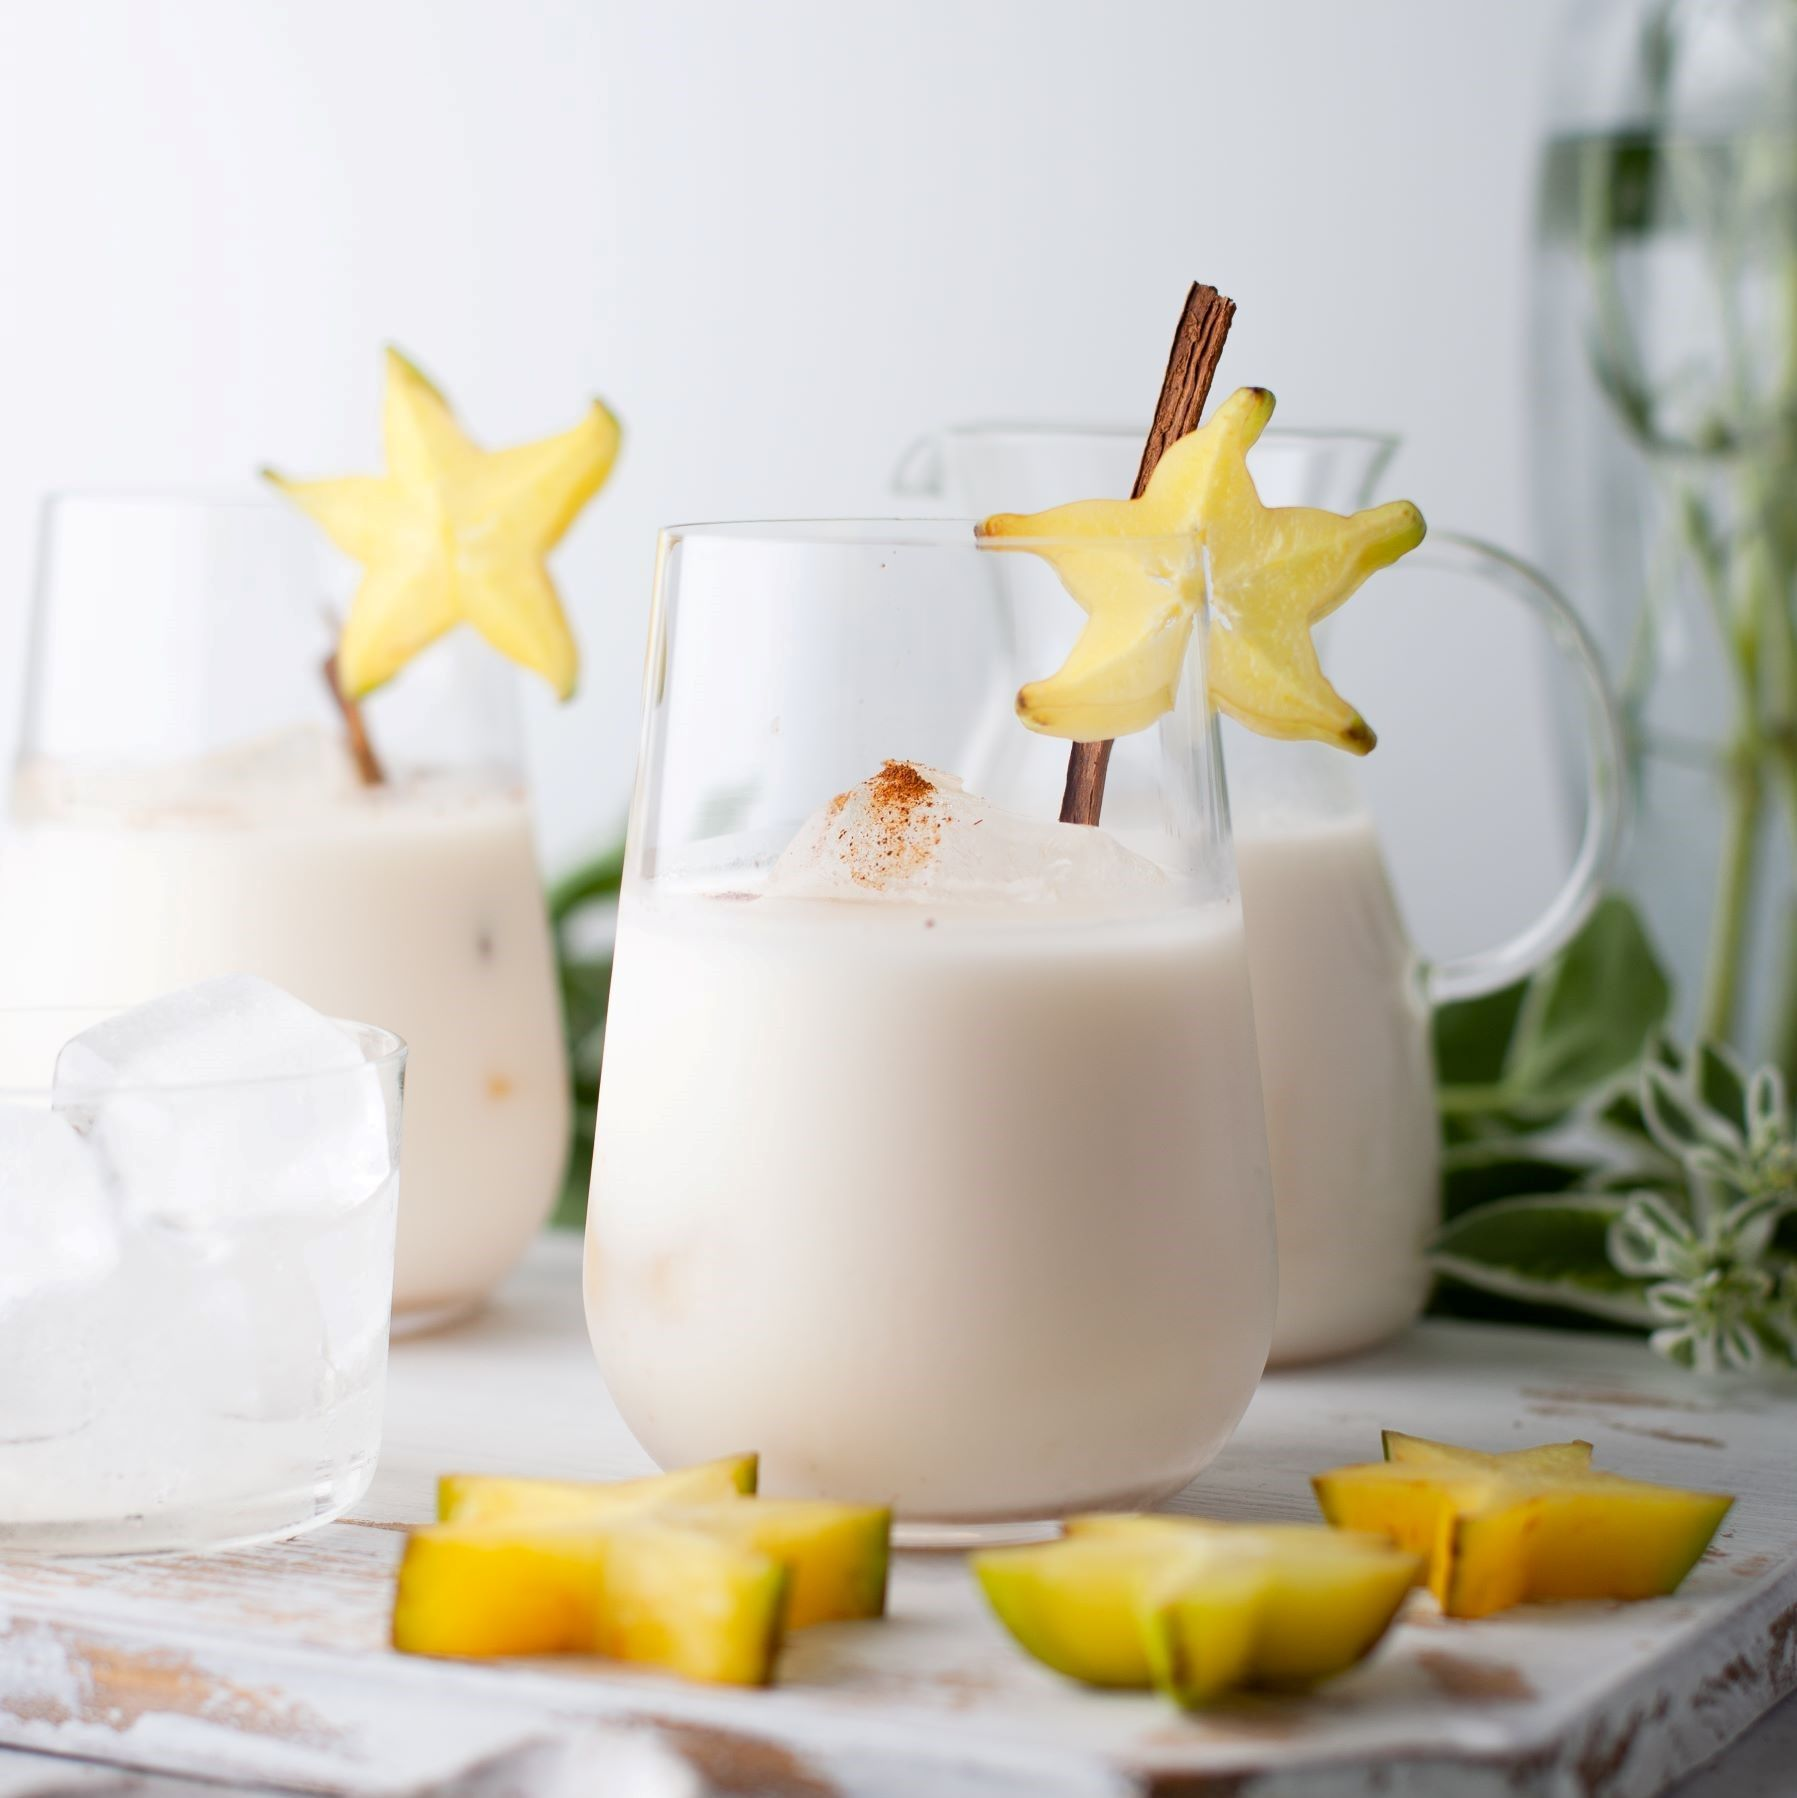 Glasses filled with creamy homemade horchata garnished with a cinnamon stick and starfruit.